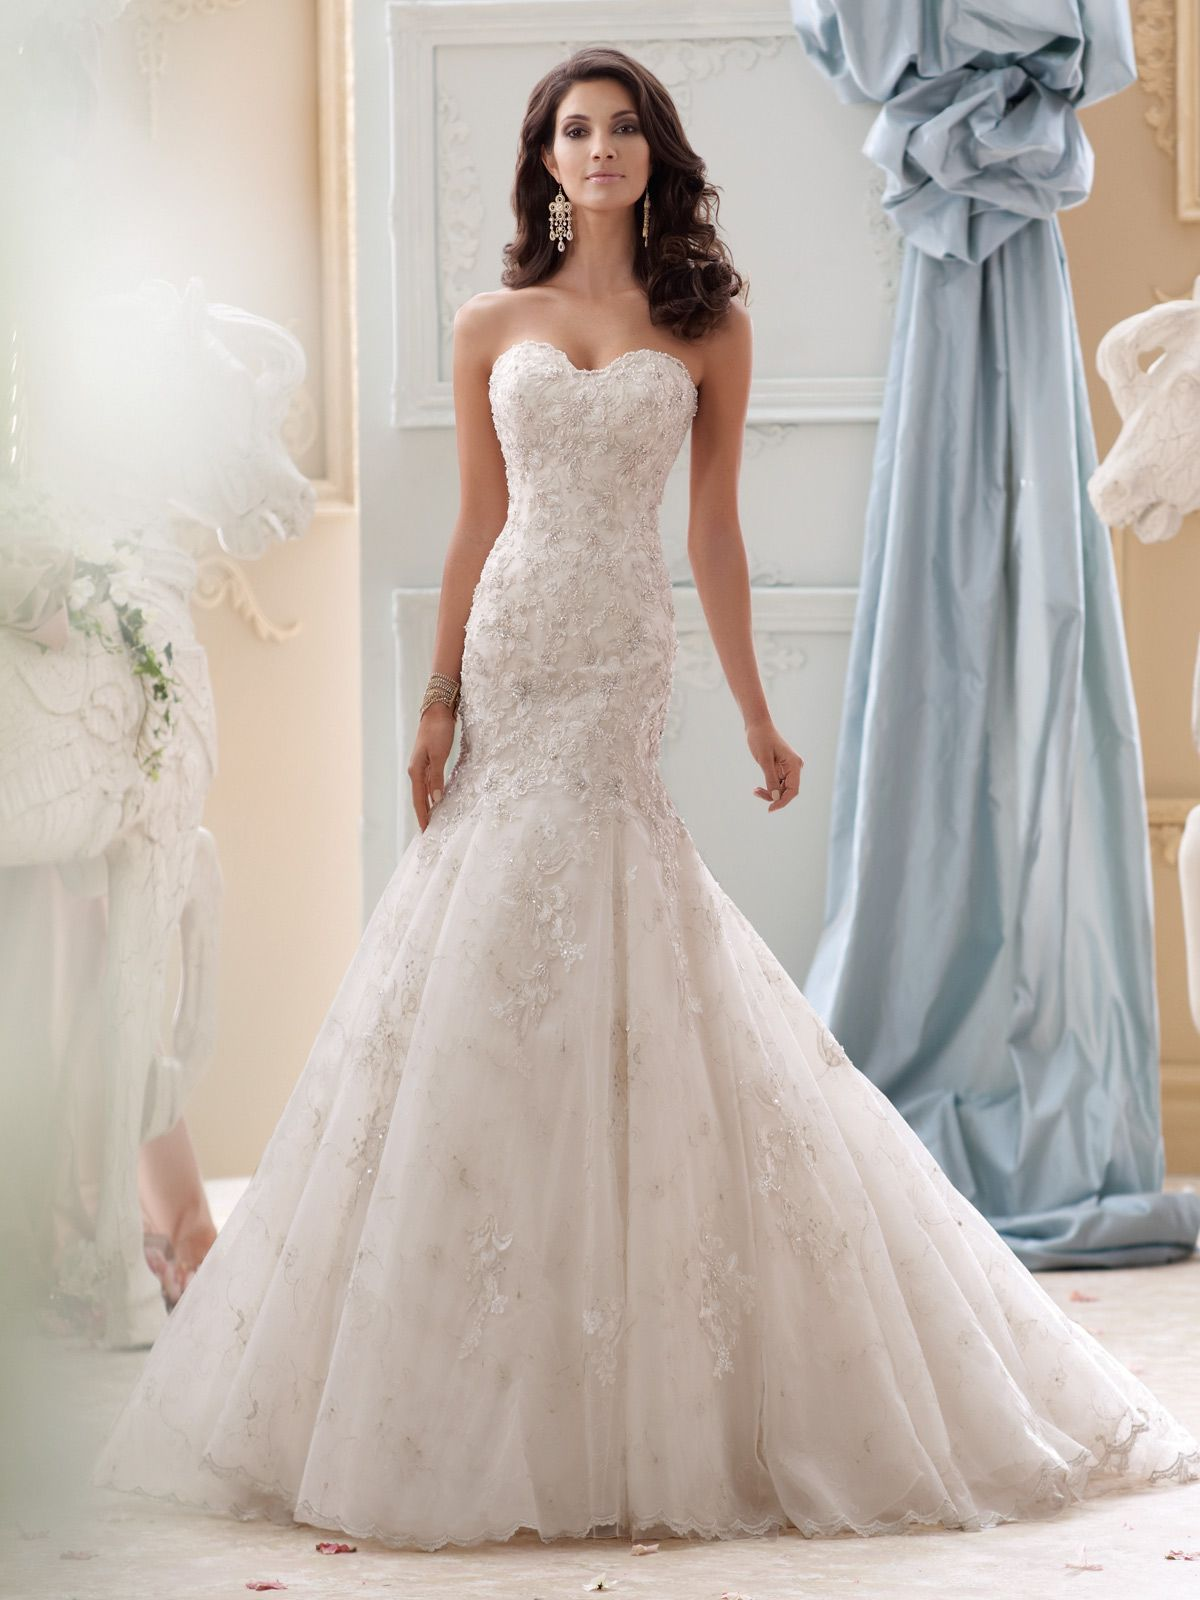 Unique wedding dresses fall 2018 martin thornburg bodas div e david tutera for mon cheri style 115232 is one of the beautiful blue wedding dresses in his collection of bridal gowns click for details on this style junglespirit